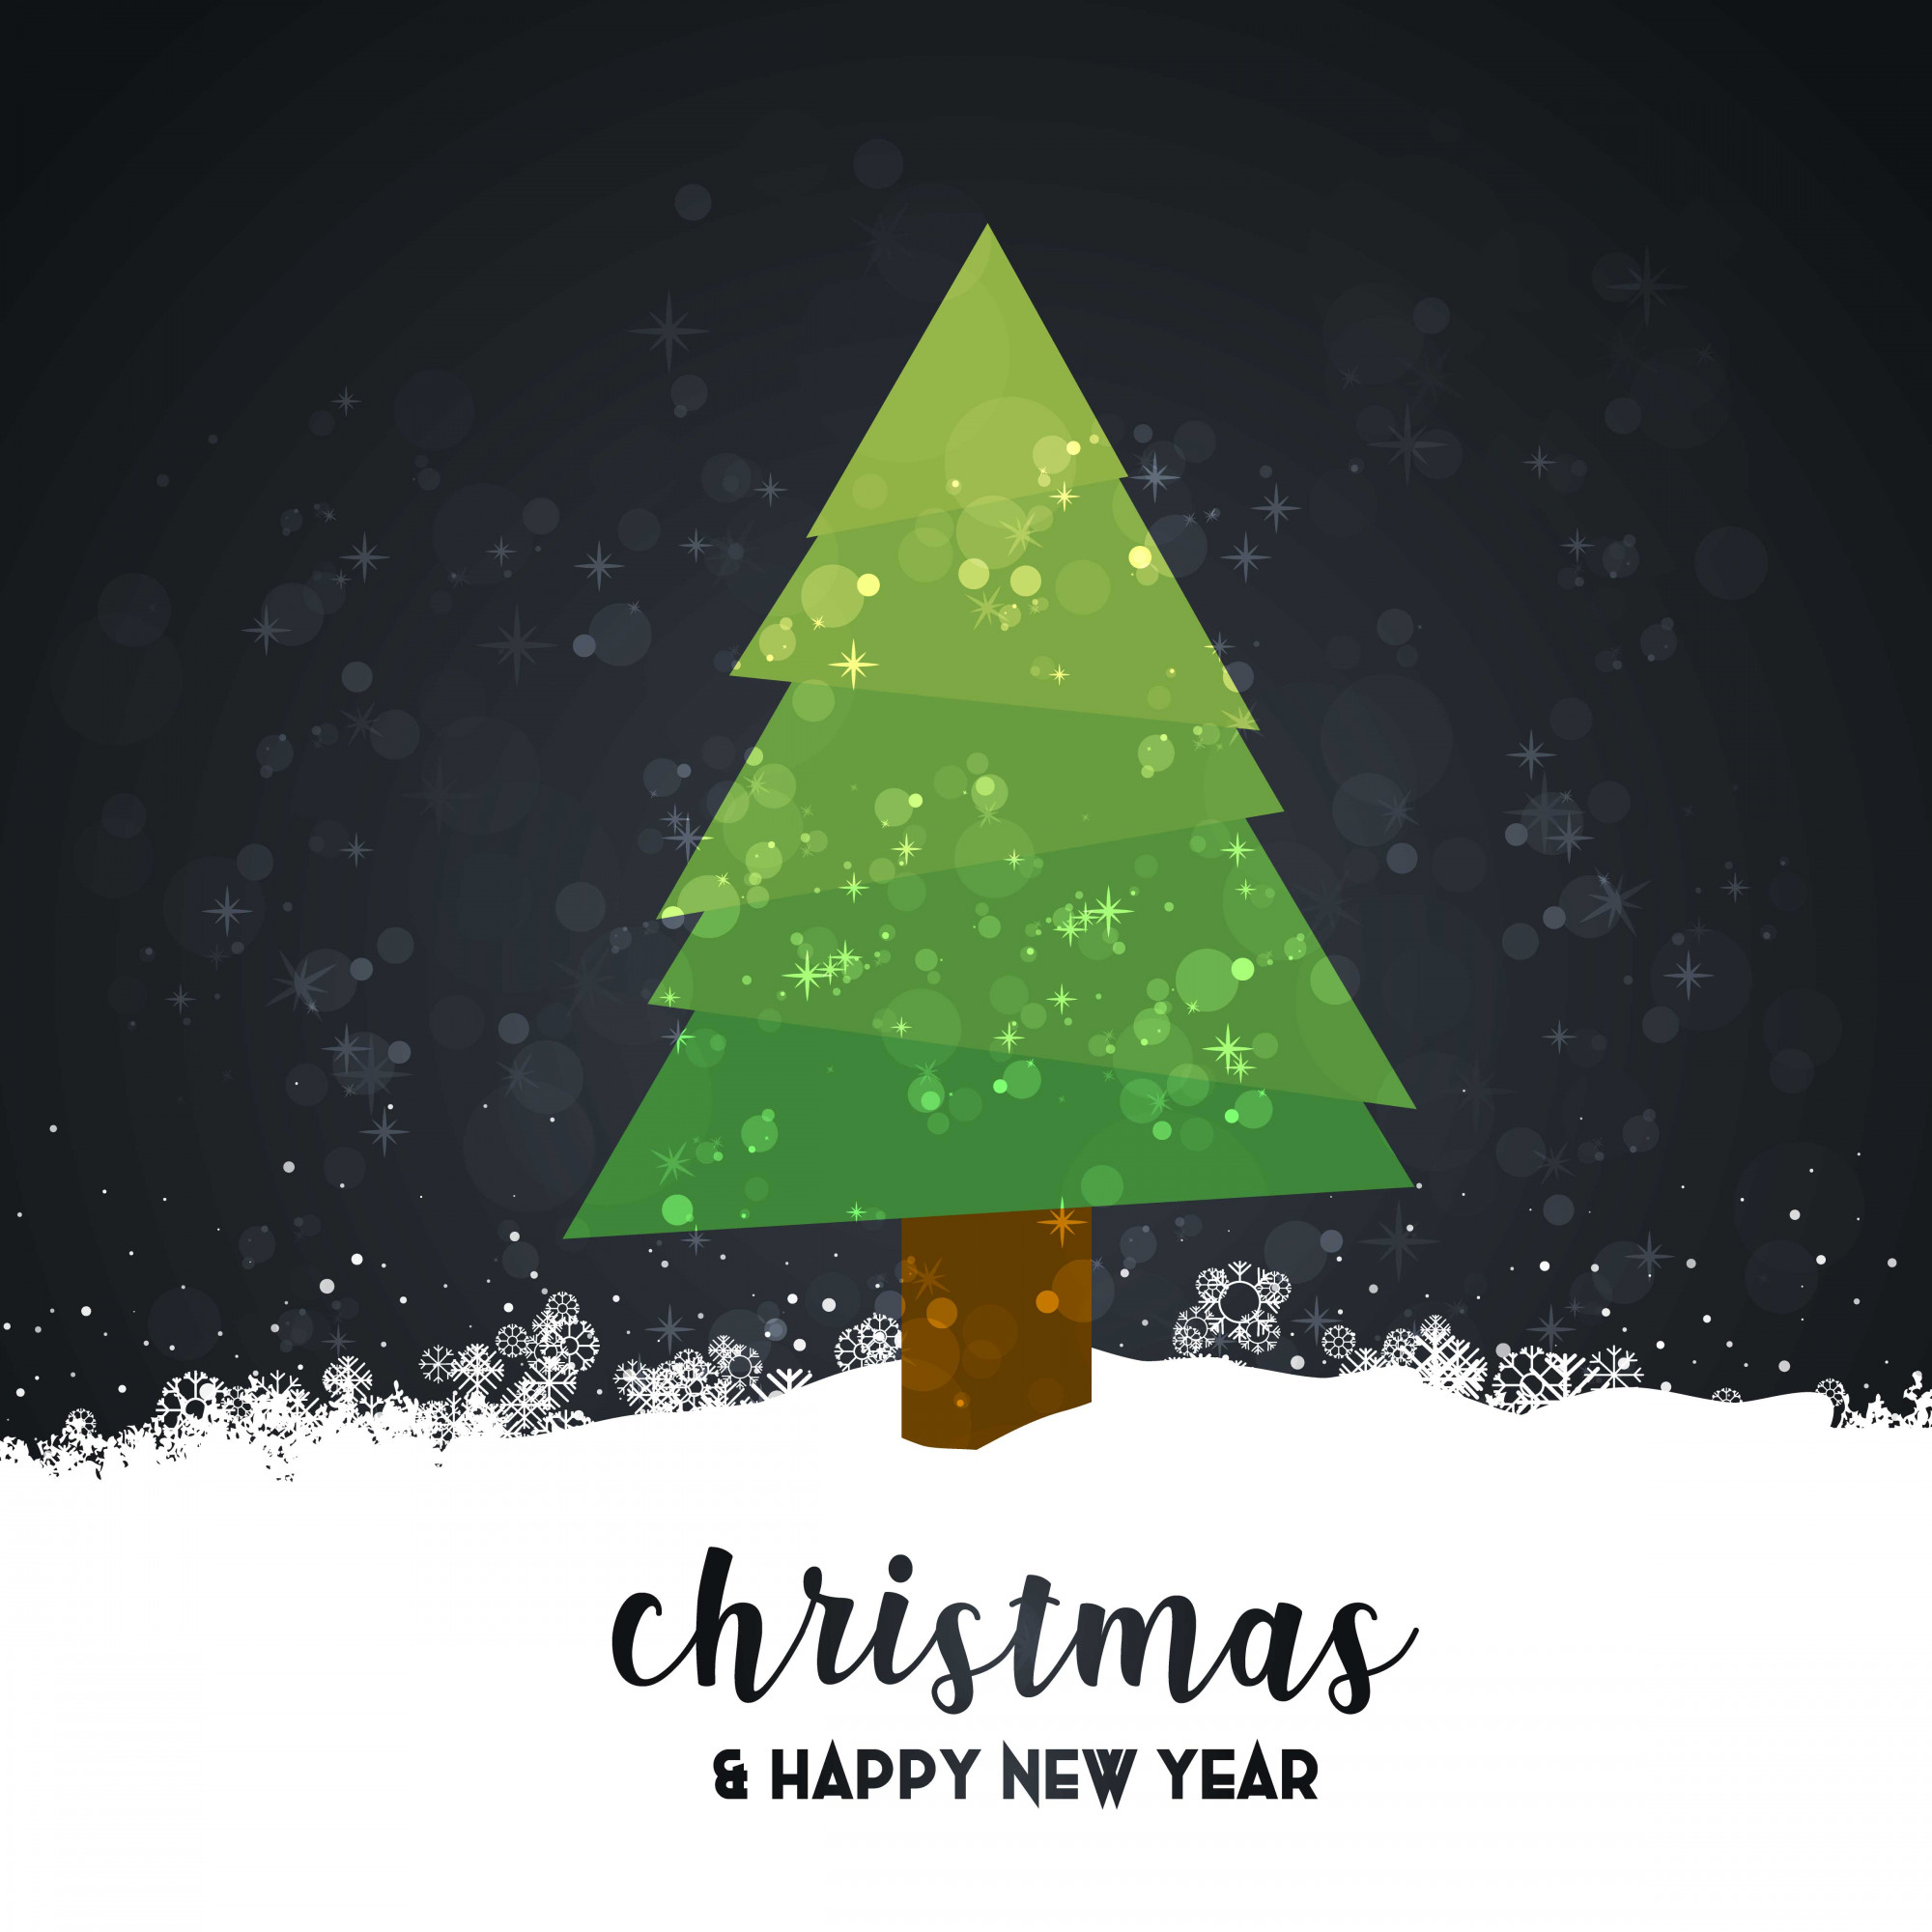 Merry Christmas card with dark background and typography vector